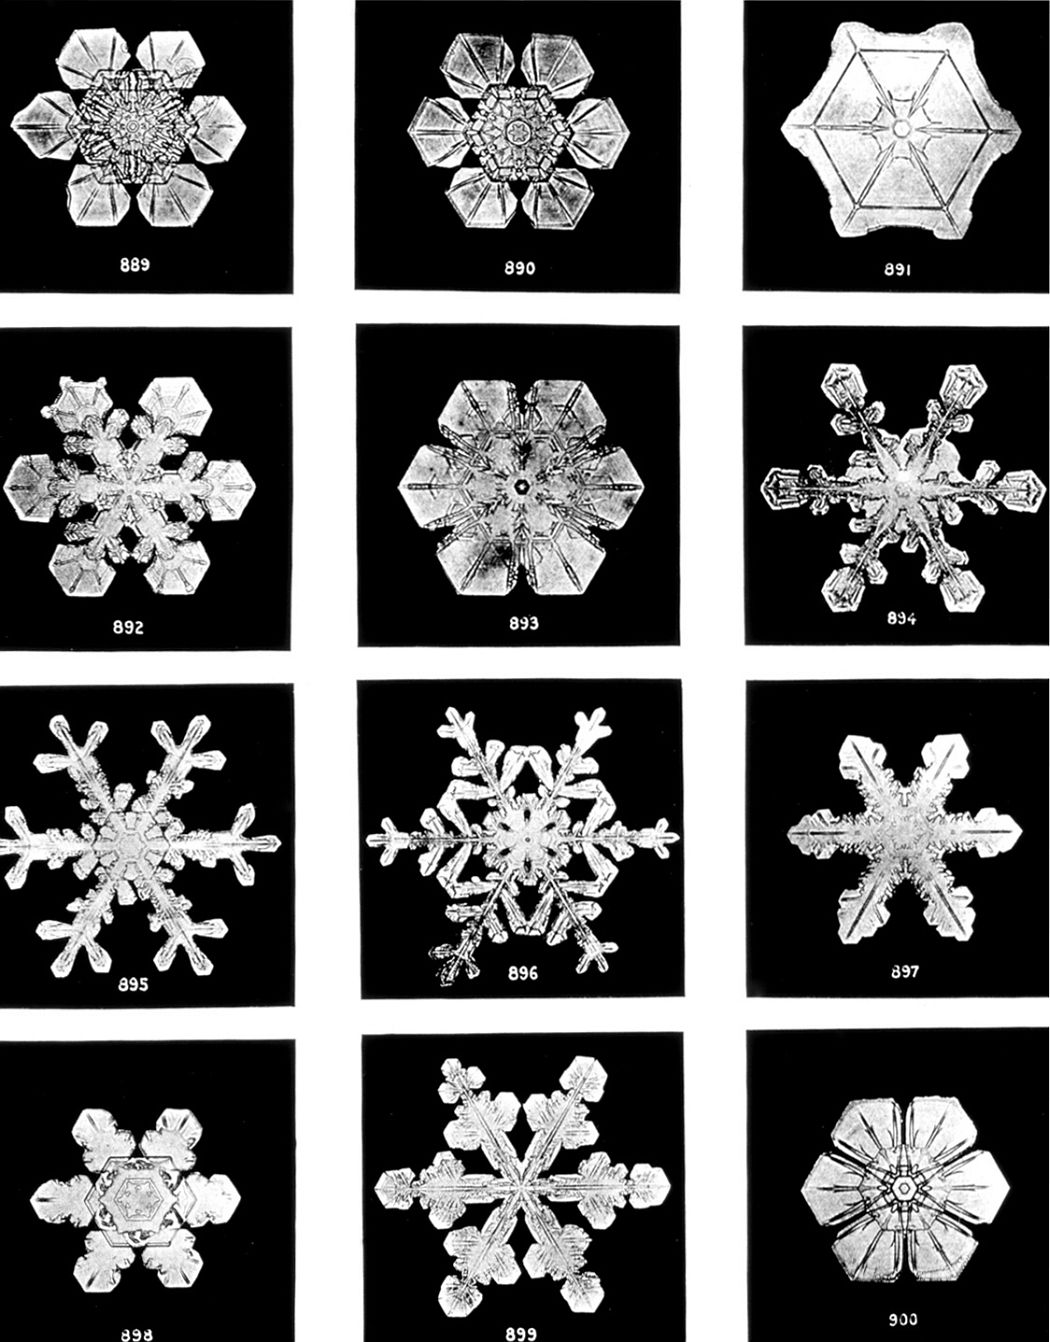 Snowflakes - Wilson Bentley